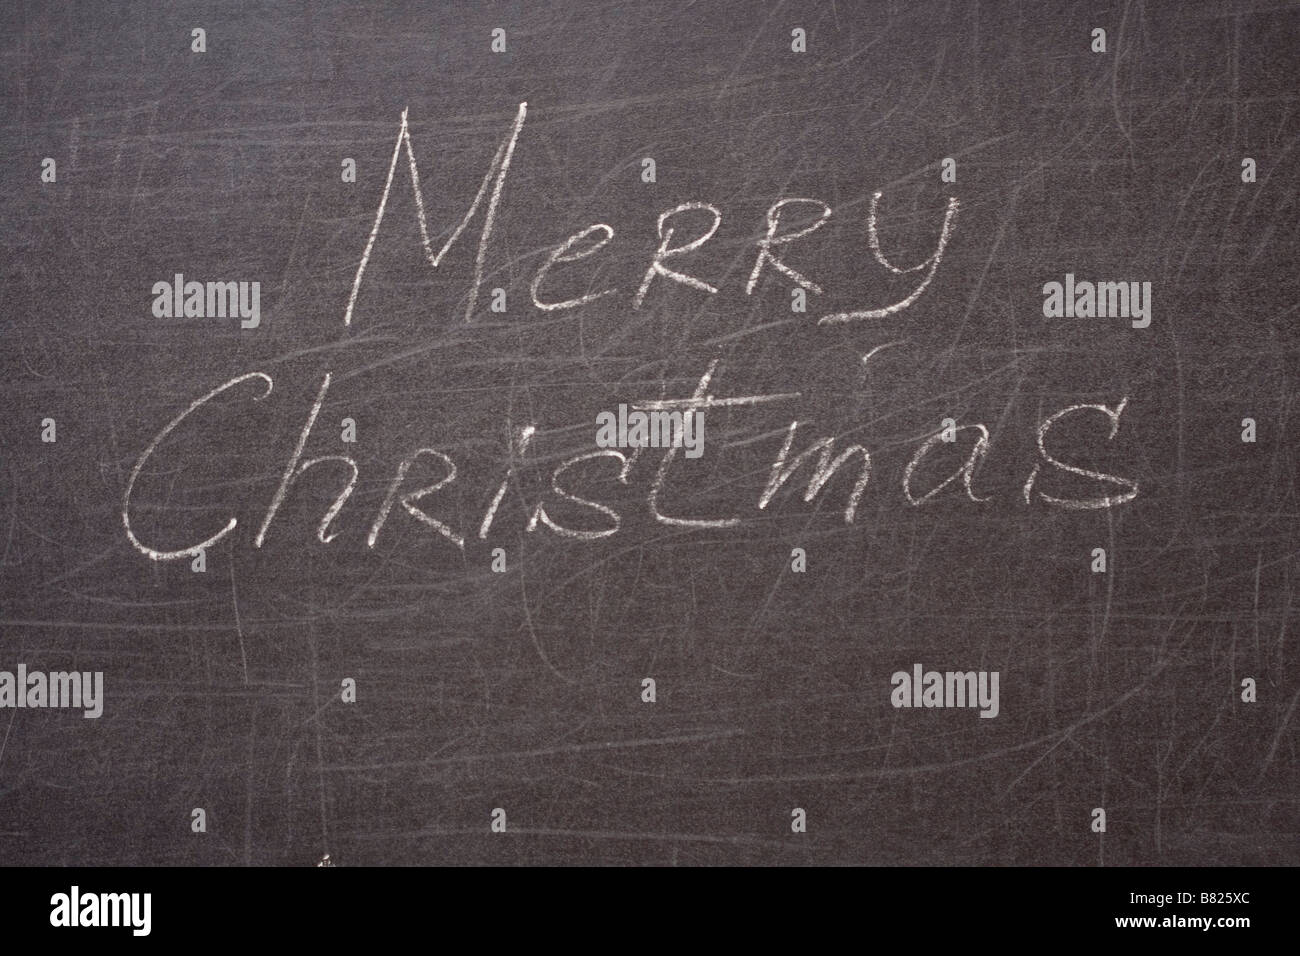 Merry christmas written on the school desk - Stock Image